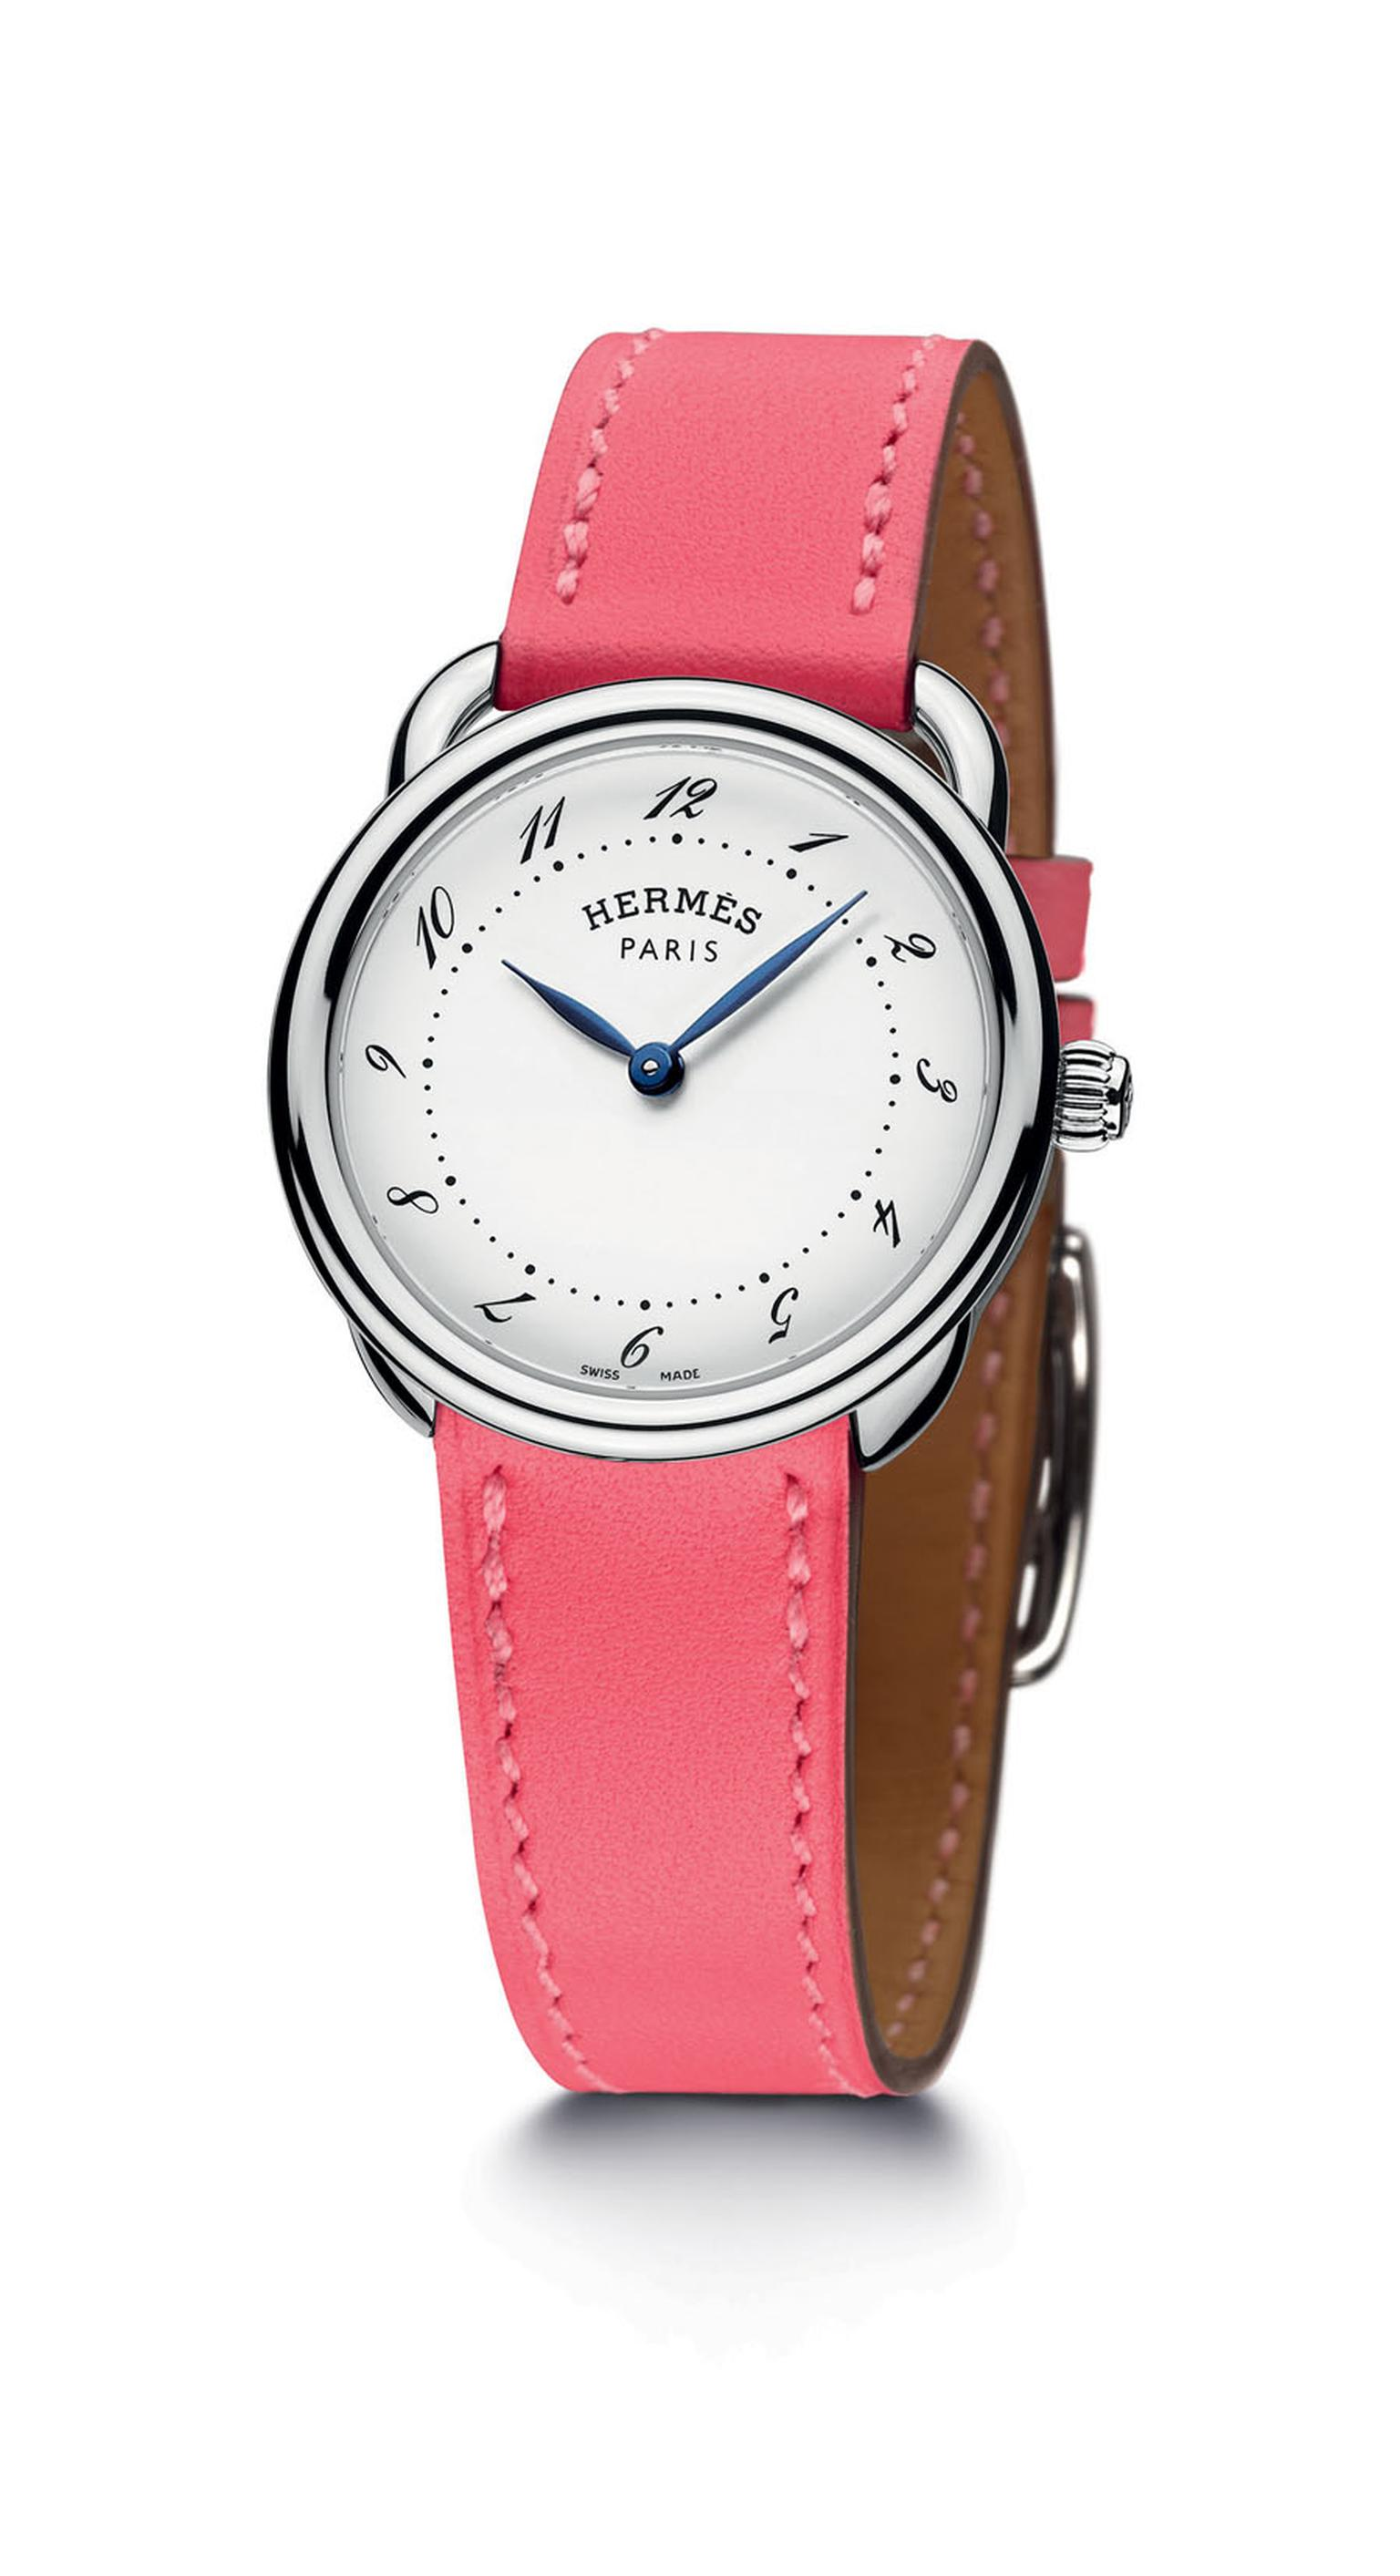 HermesWomensArceauWatchCollection1